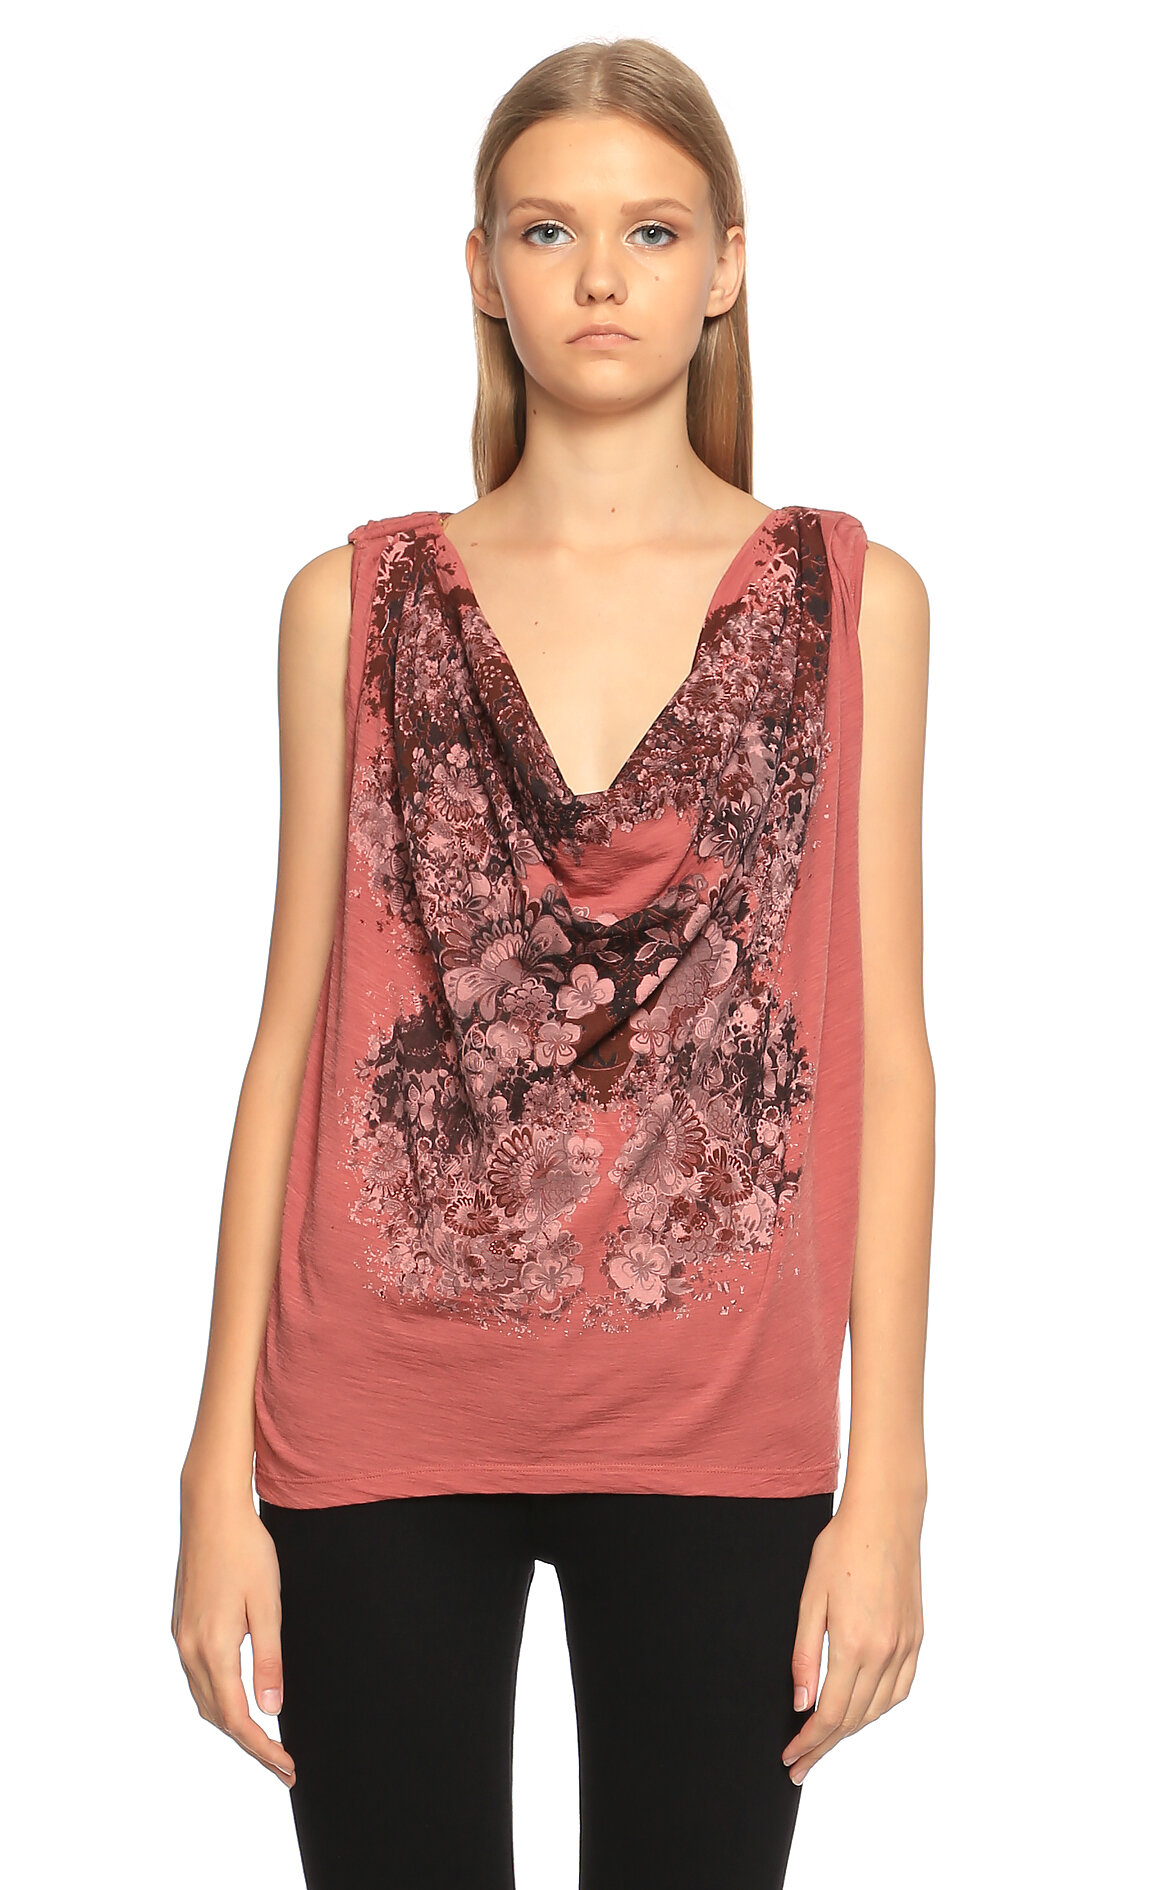 Just Cavalli-Just Cavalli Baskılı Bordo T-Shirt